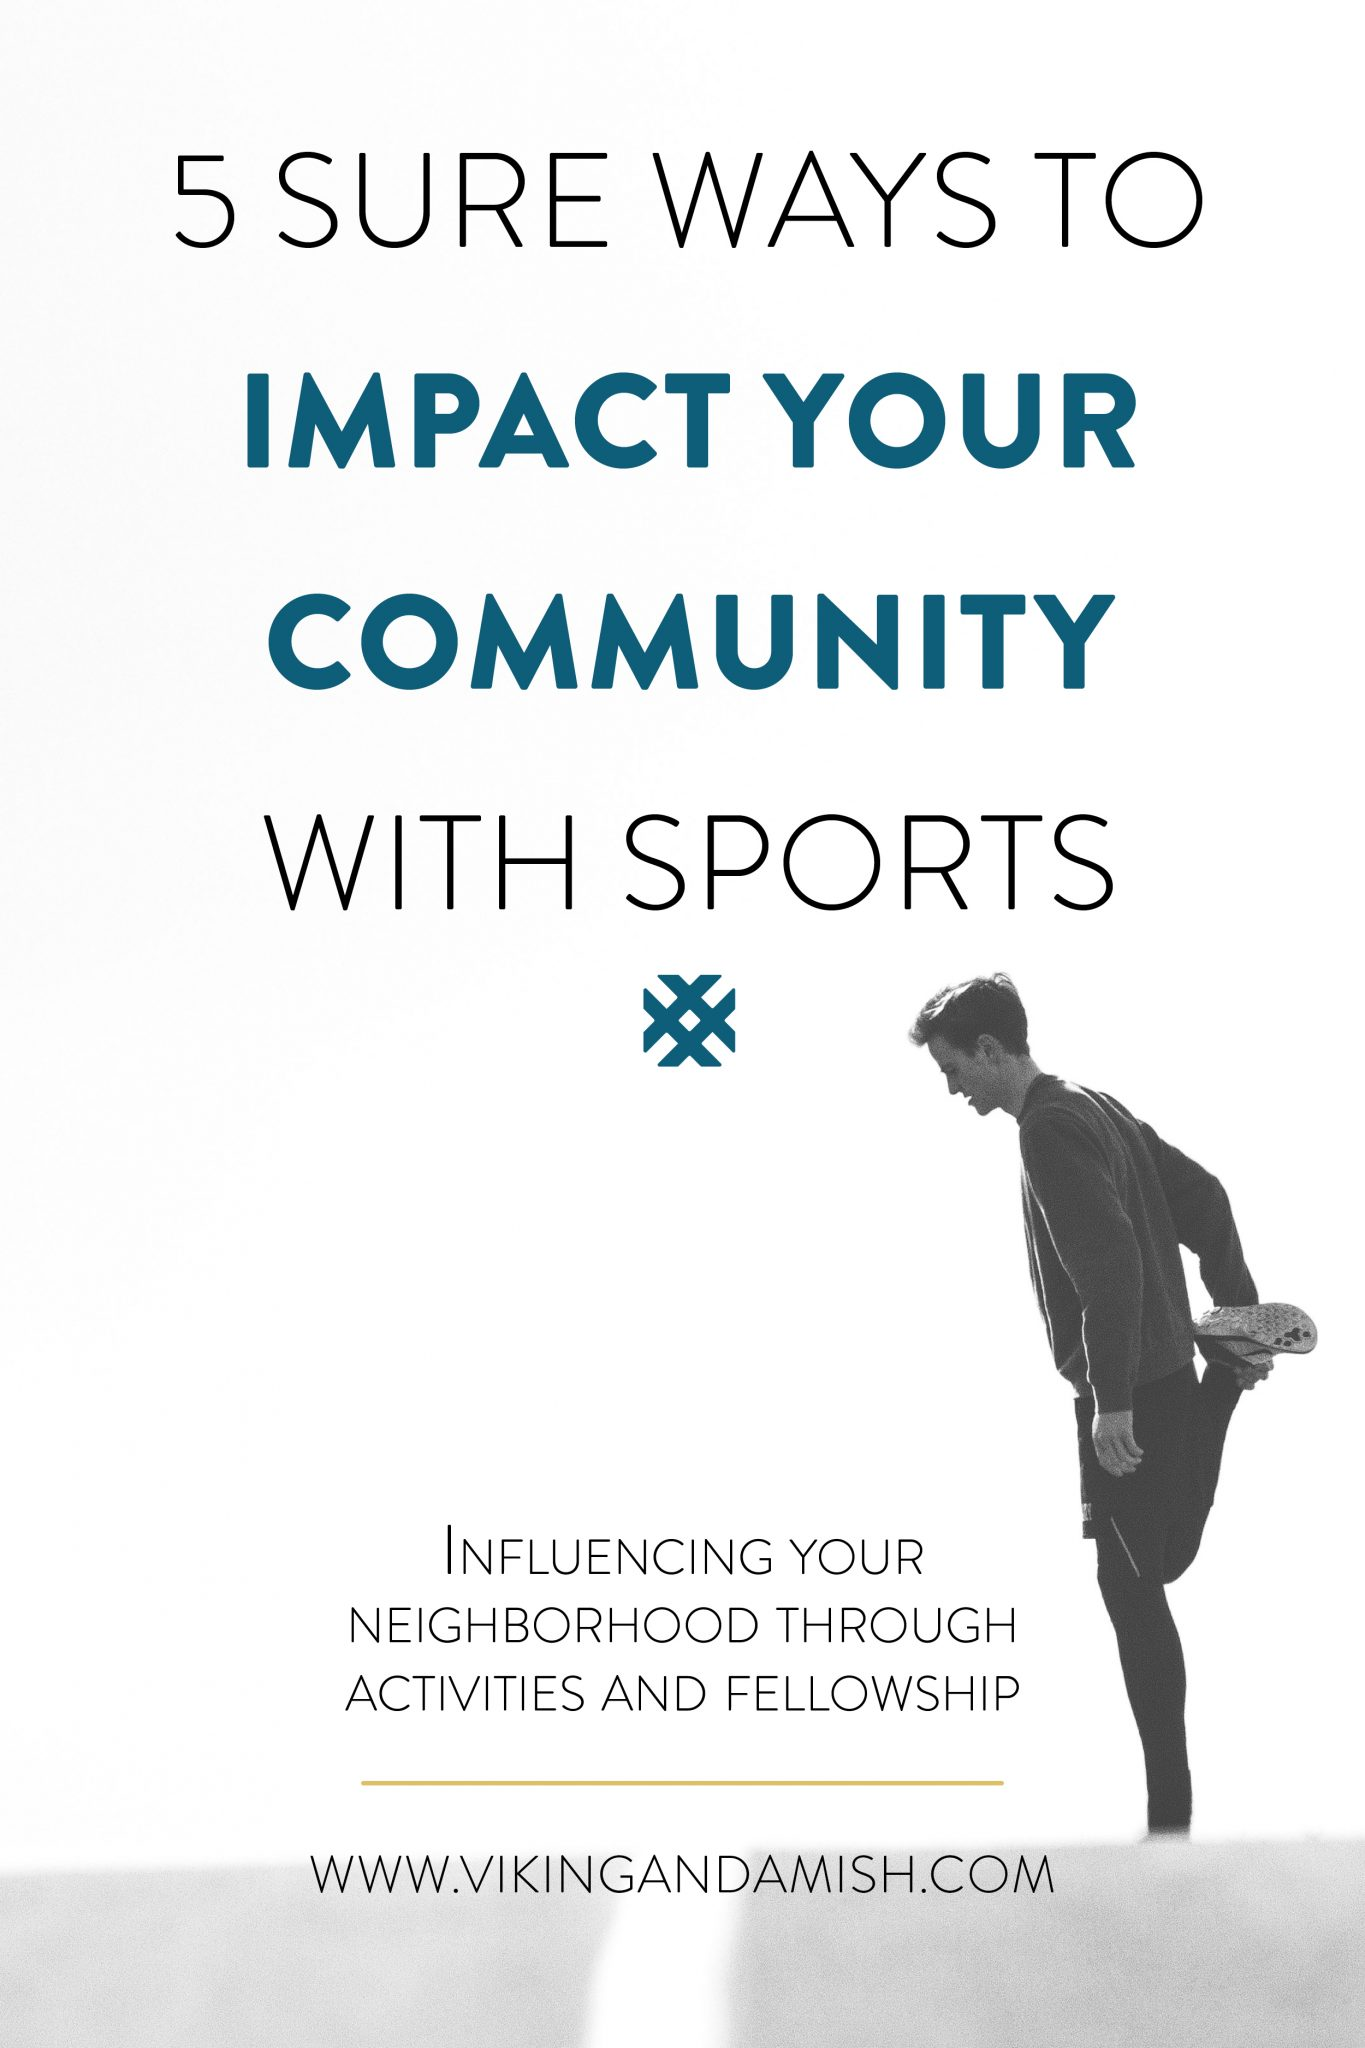 Looking for ways to get your neighborhood more engaged? Here is an inspirational guide with 5 sure ways to impact your community with sports.